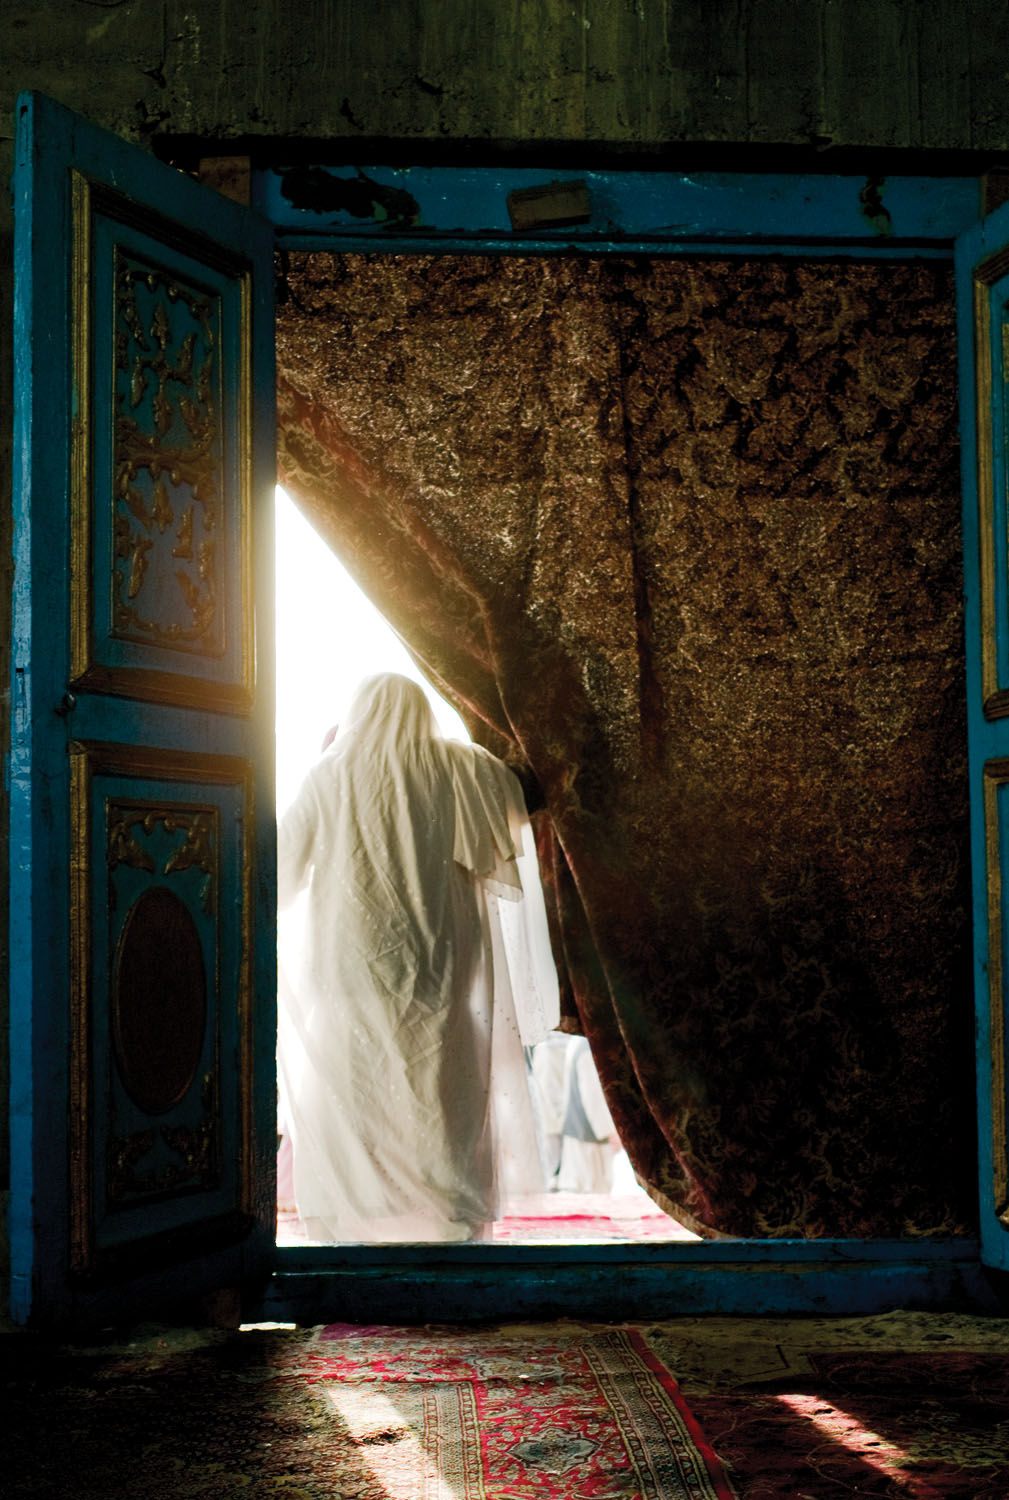 A Sufi shrine at a mosque frequented by Hazara, often the target of Daesh and Taliban attacks. Kabul, Afghanistan. 2010. Photo by Monika Bulaj.